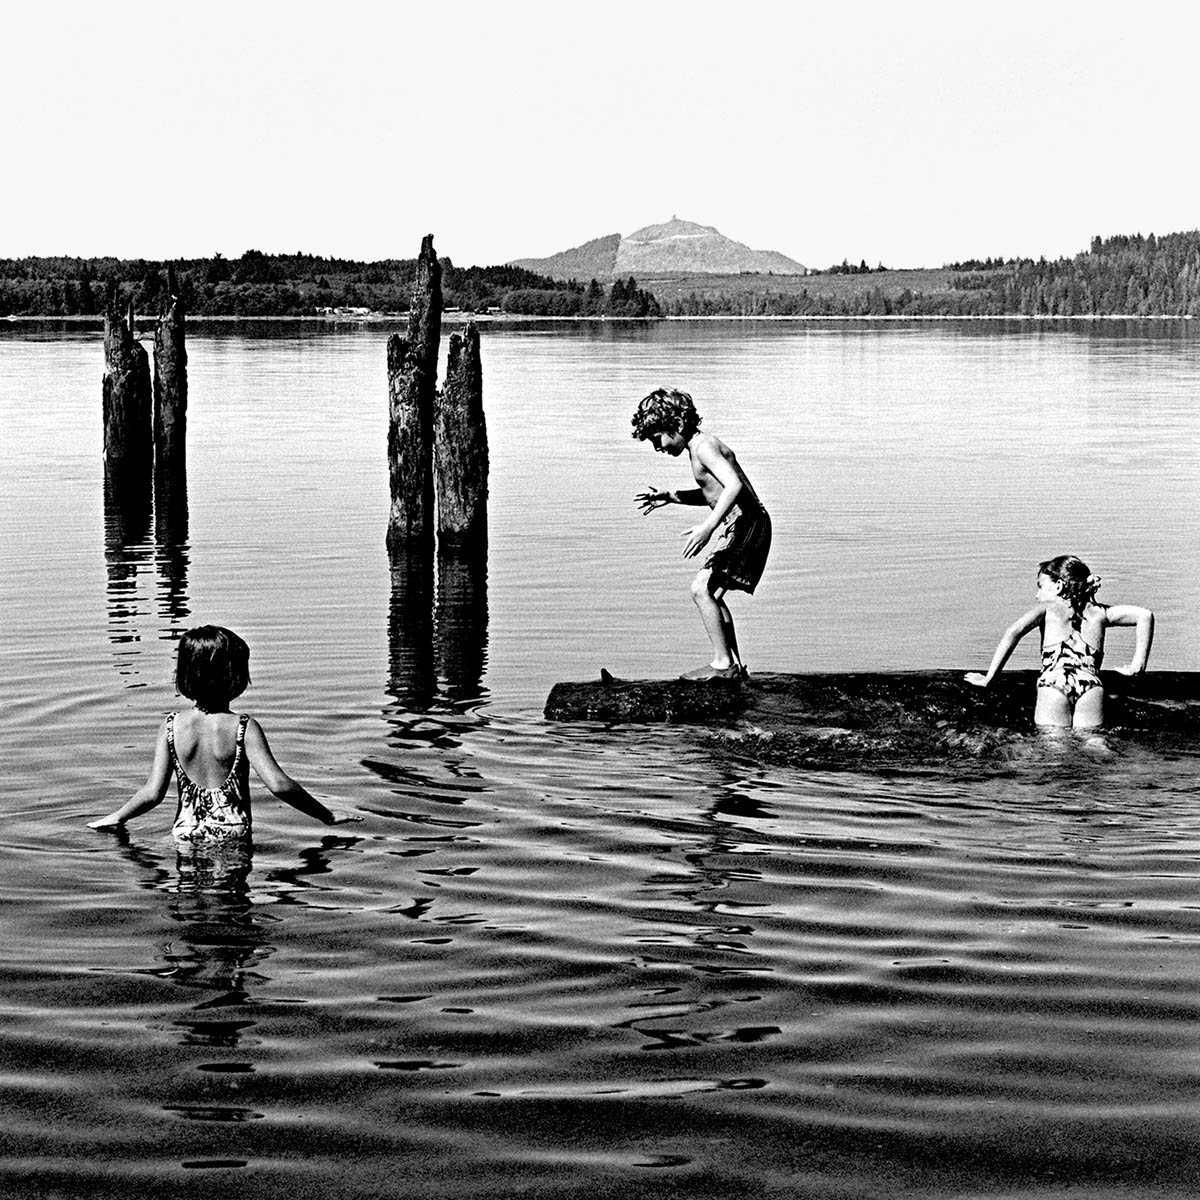 Lake Quinault, Washington, 1997